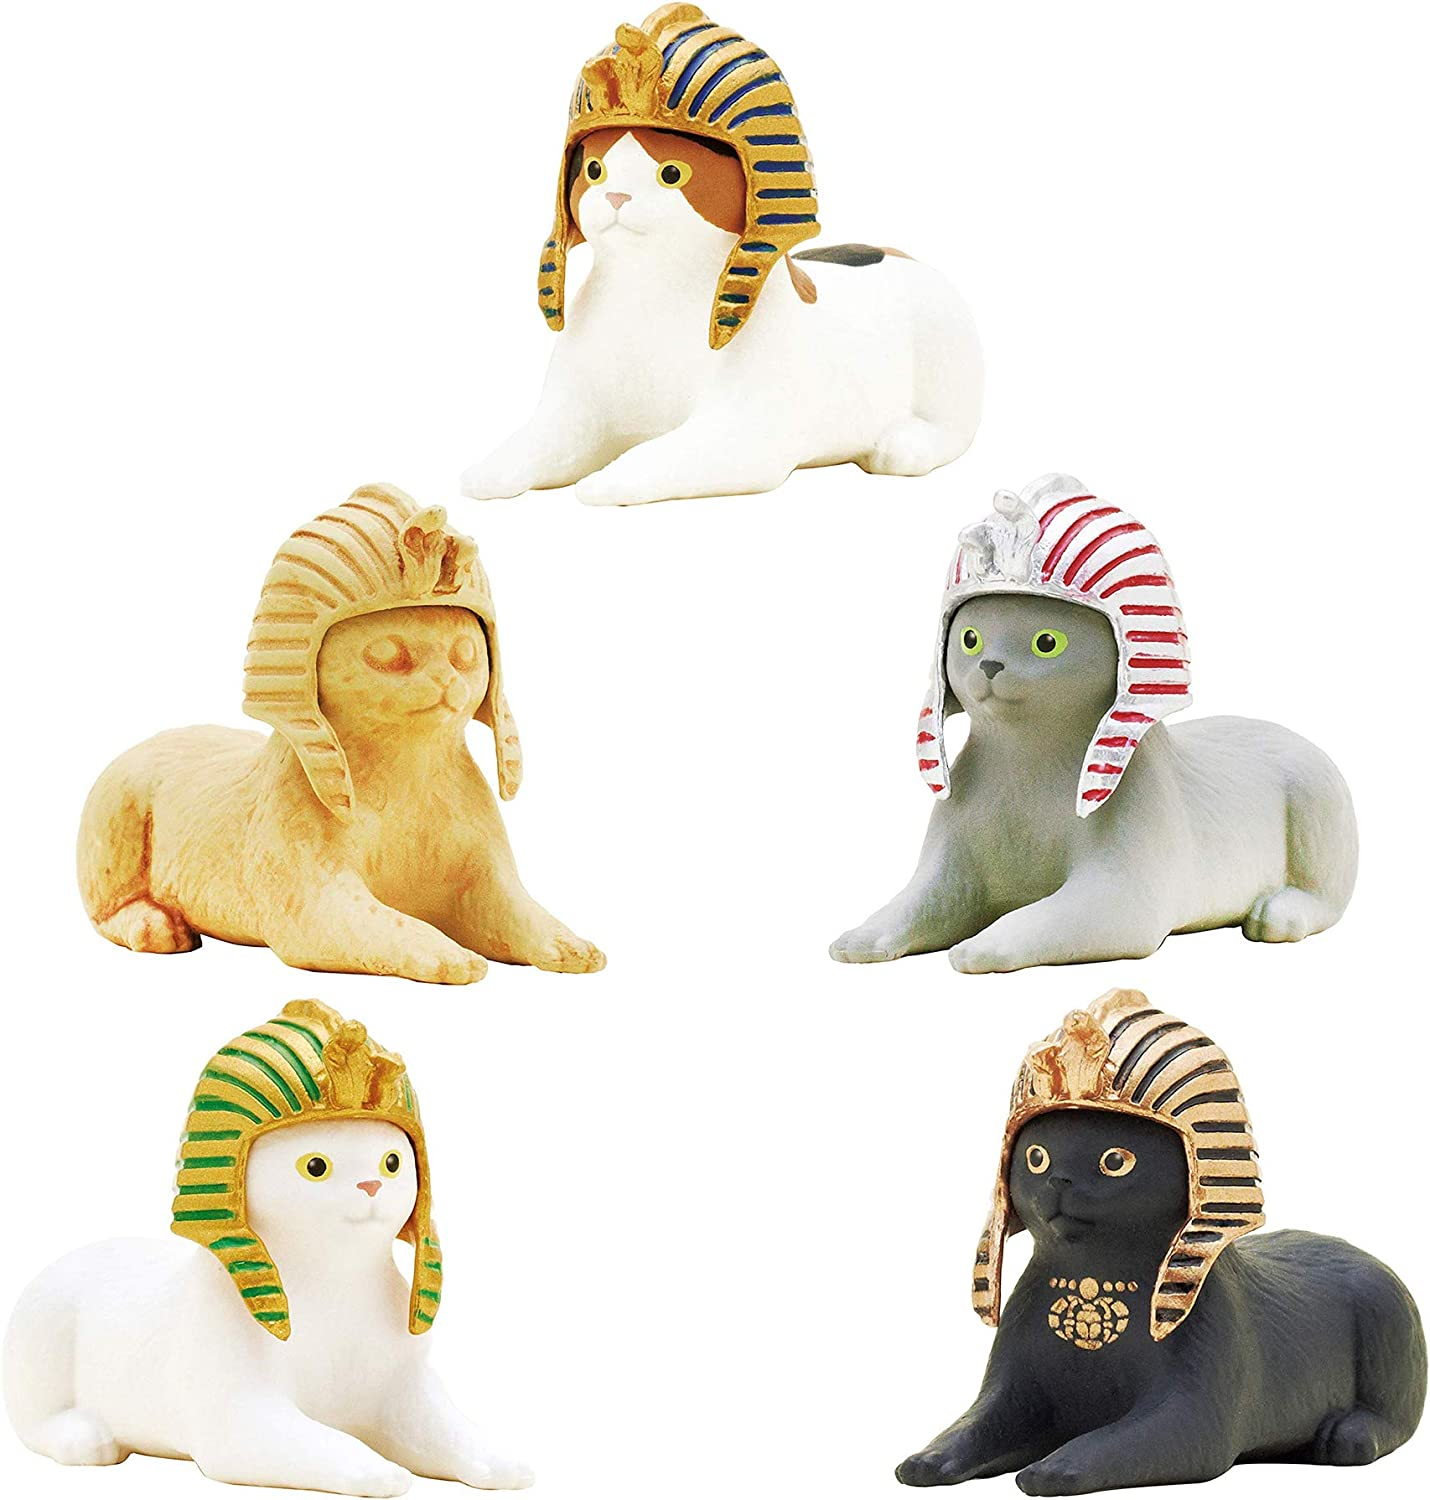 Kitan Club Cat Pharaoh Figure Blind Box Includes 1 of 5 Collectible Figurines - Fun, Versatile Decoration - Authentic Japanese Design